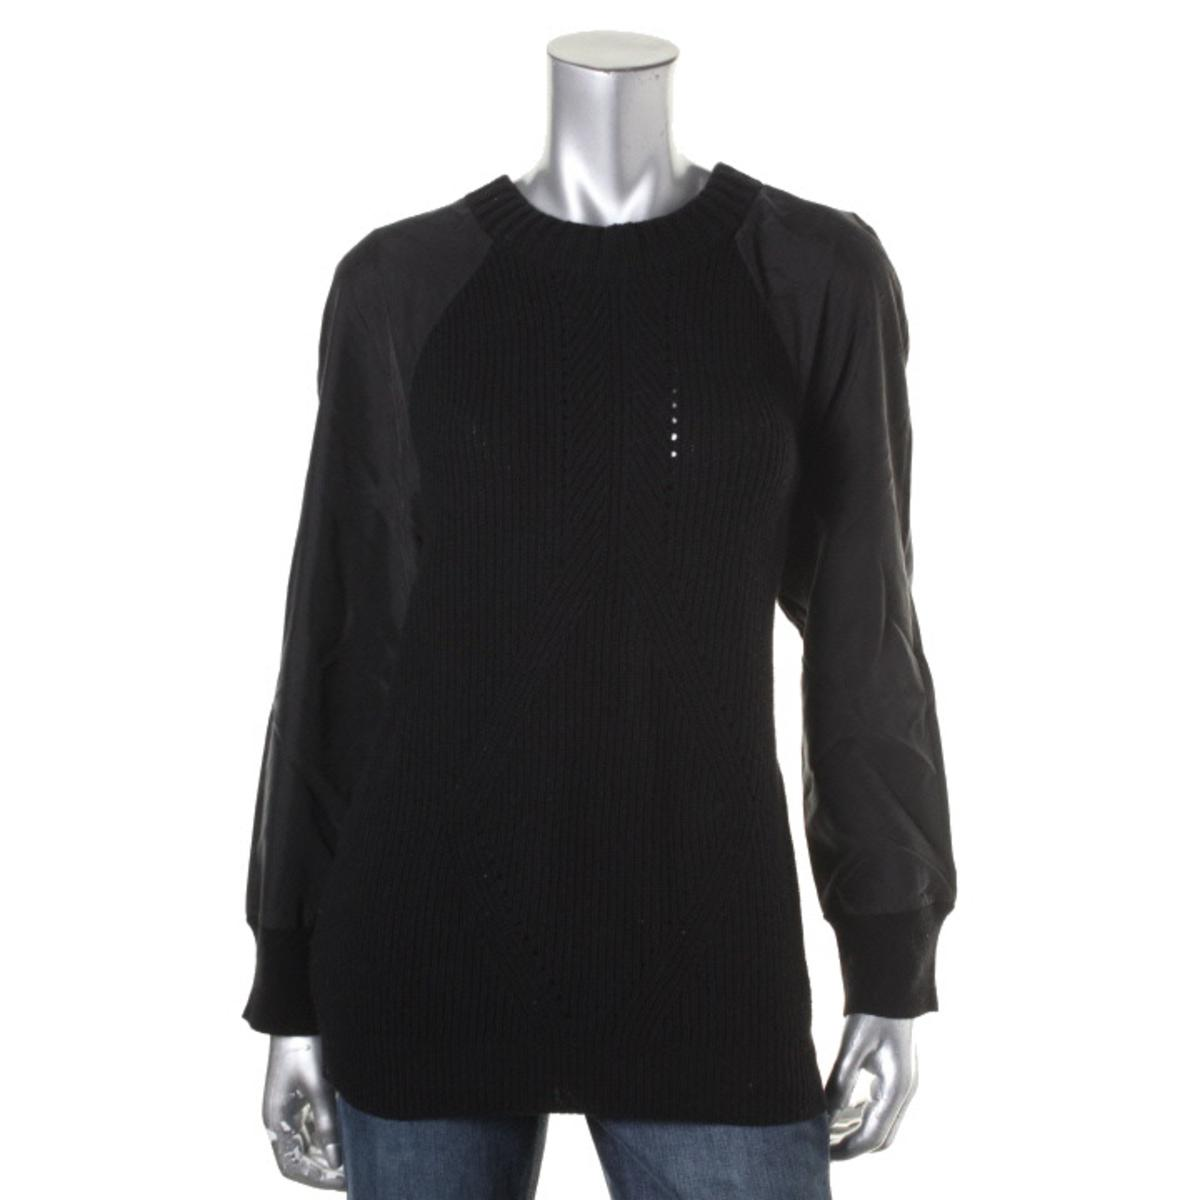 calvin klein jeans 2454 womens mixed media crew neck pullover sweater top bhfo ebay. Black Bedroom Furniture Sets. Home Design Ideas